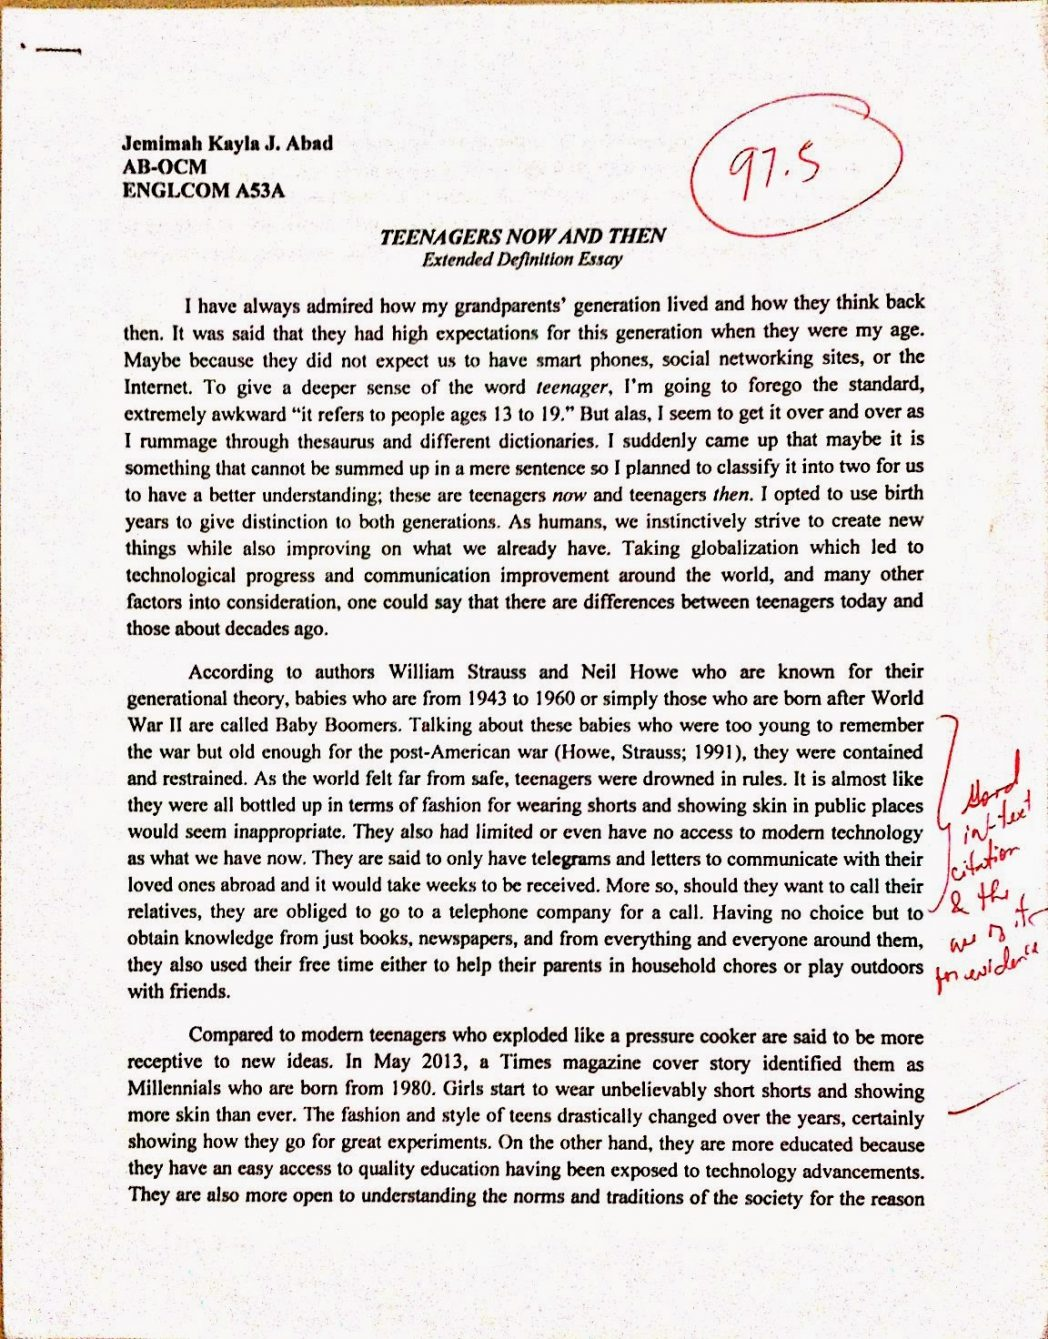 020 Persuasive Essay Definition Sample Argumentative Tip Outline Tips Writing Good Pdf Gre Ielts Icse Ap Lang And Tricks 1048x1339 Fearsome Wikipedia Define Format & Examples Full